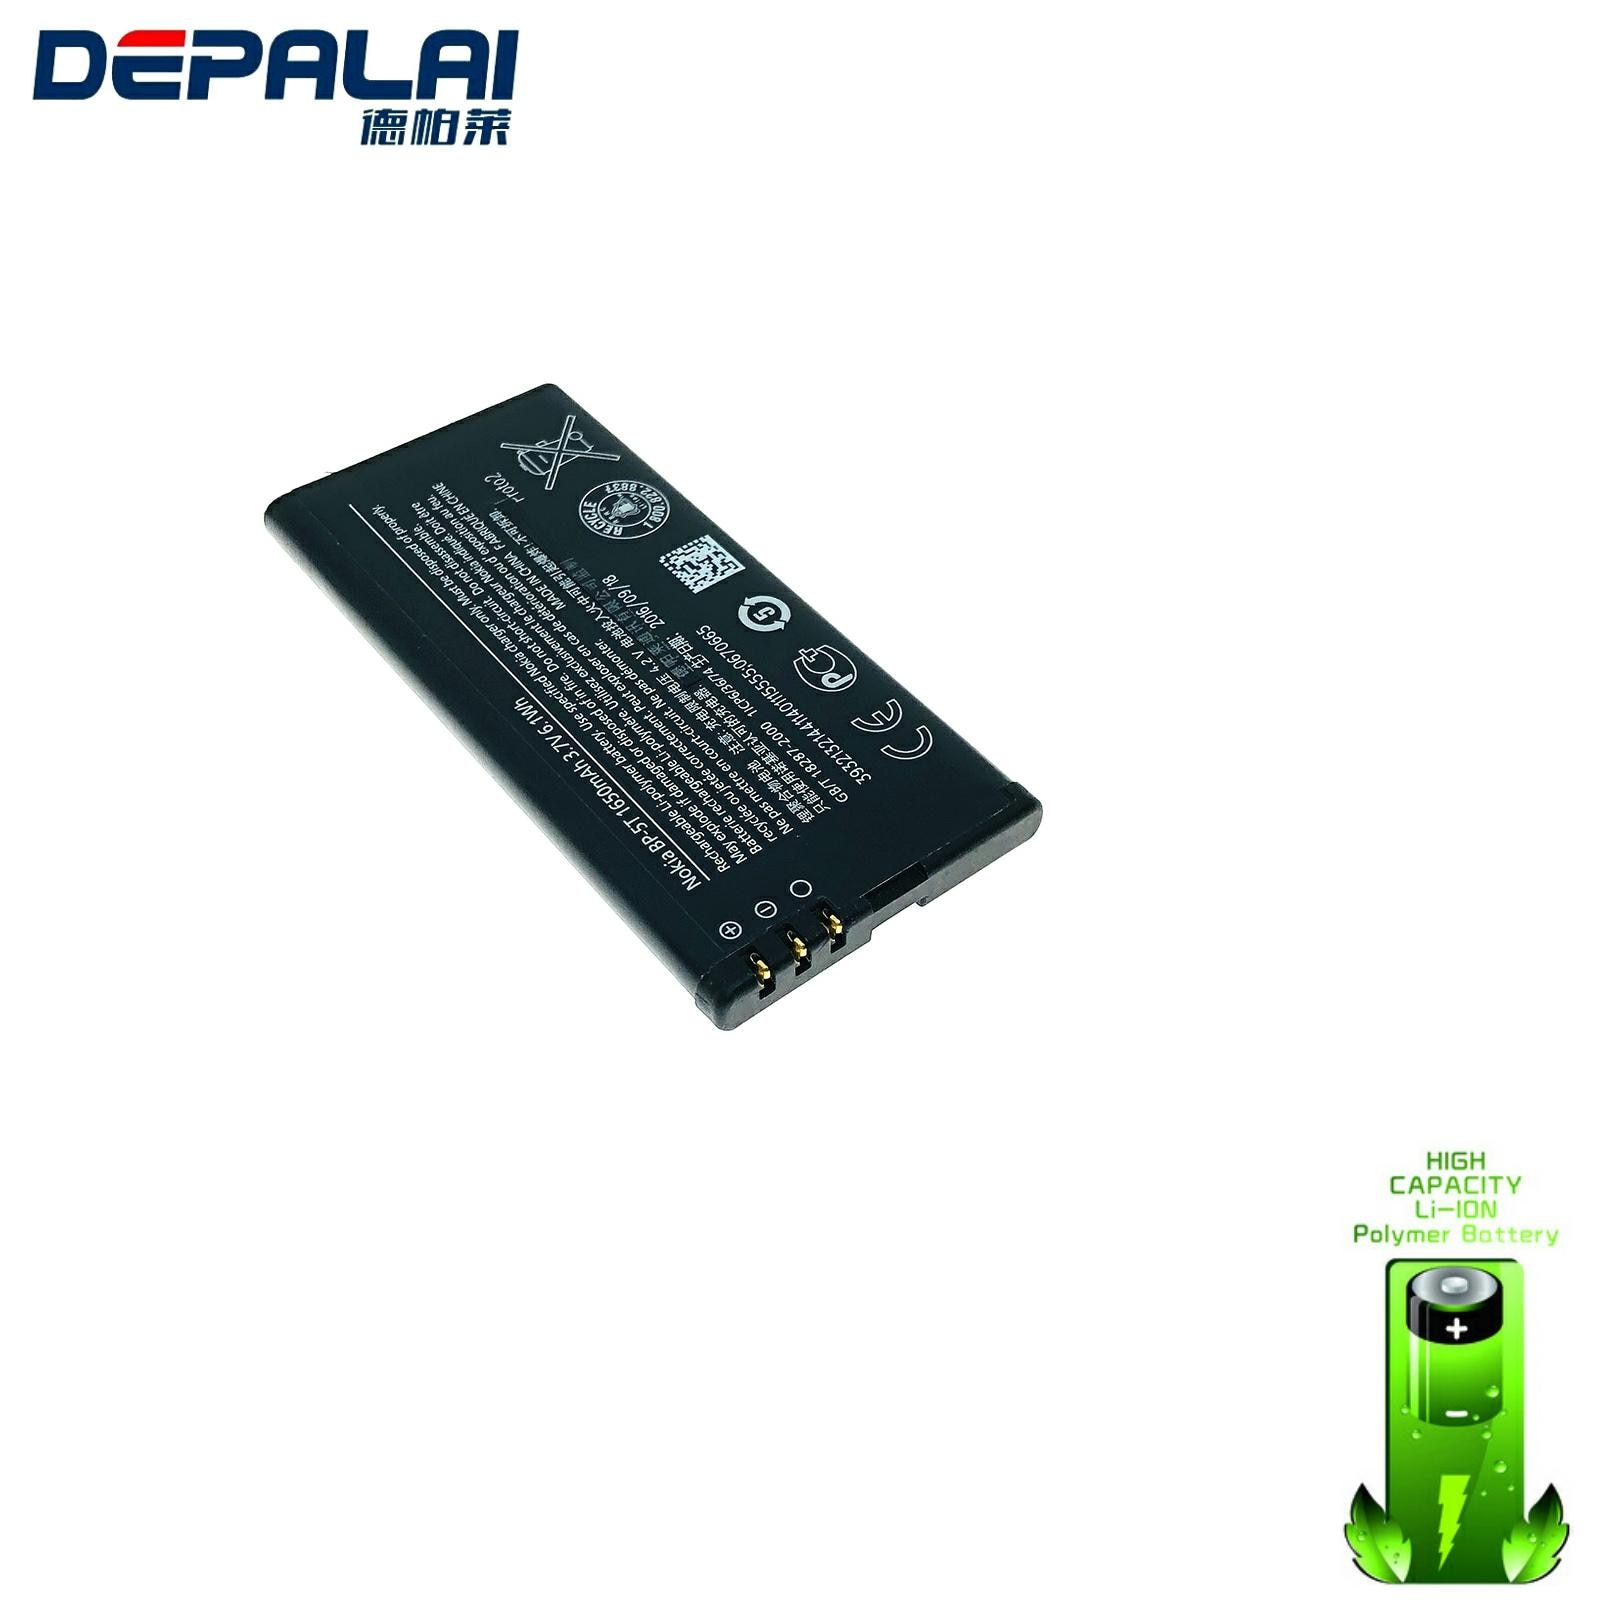 High Quality 1650mAh BP-5T battery for Nokia Lumia 820 Lumia 820T BP5T Mobile phone